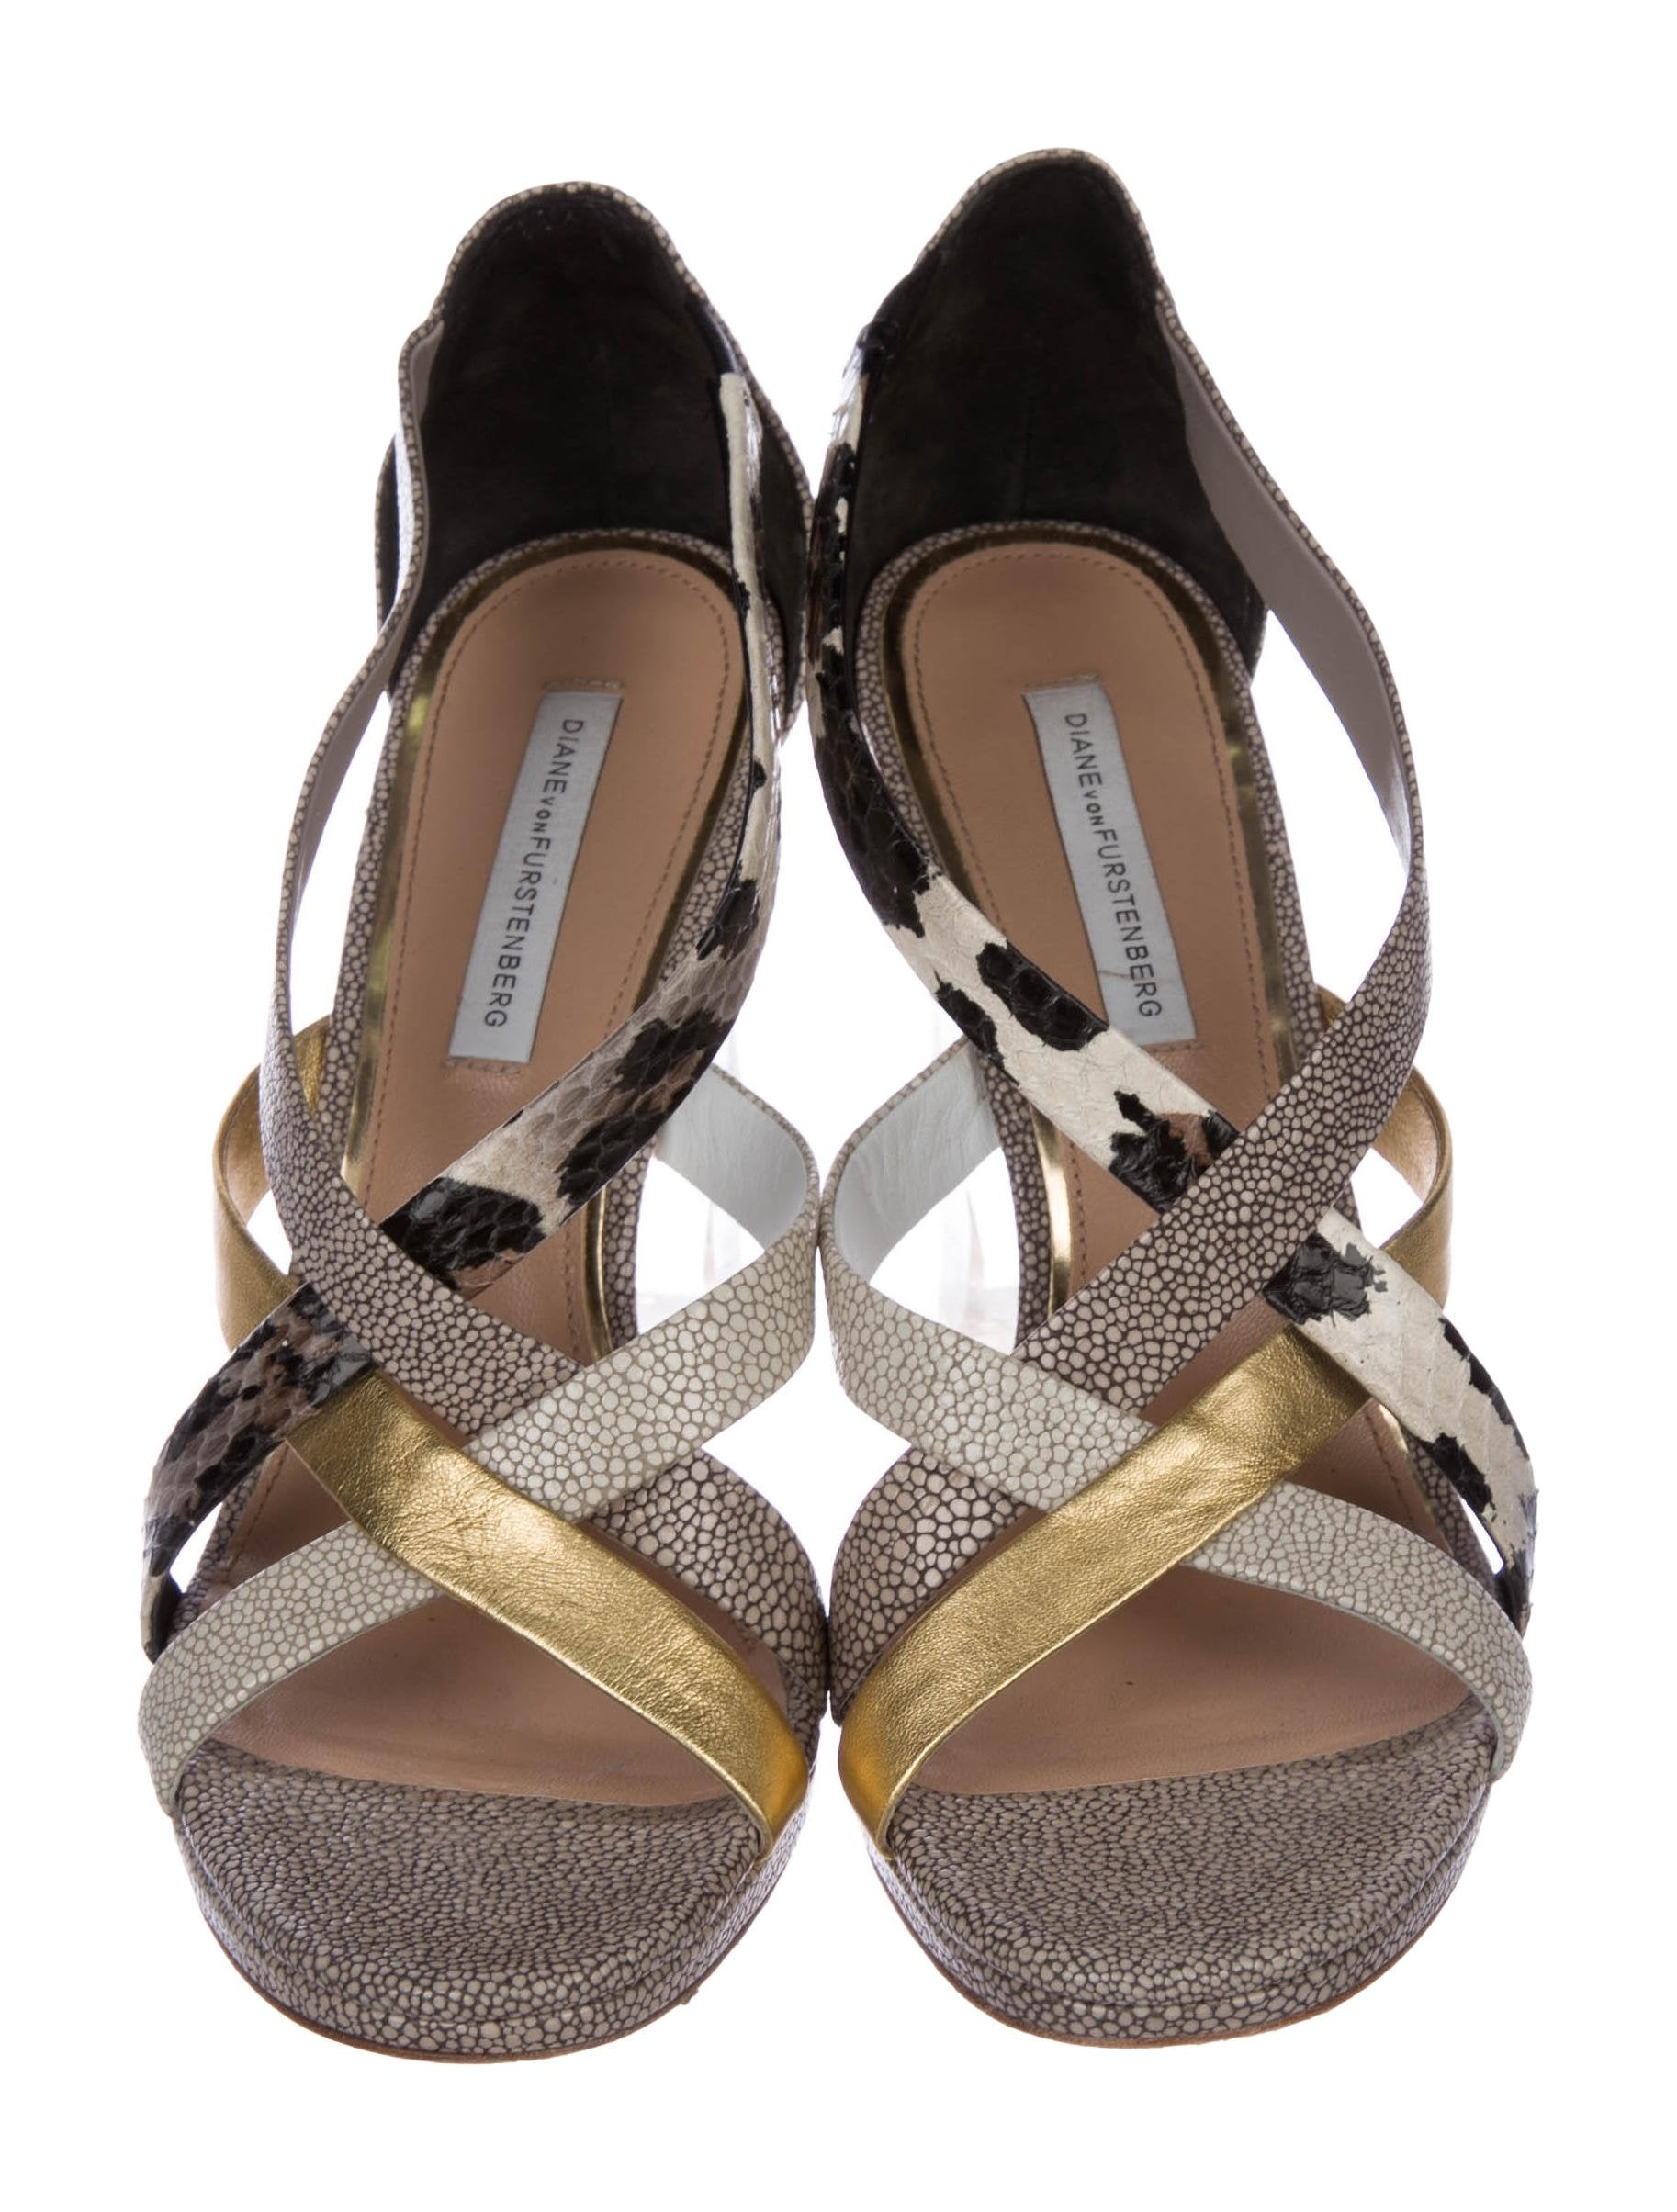 discount from china Diane von Furstenberg Ibiza Snakeskin-Accented Pumps sneakernews low price fee shipping cheap price discount shop for w3JWR